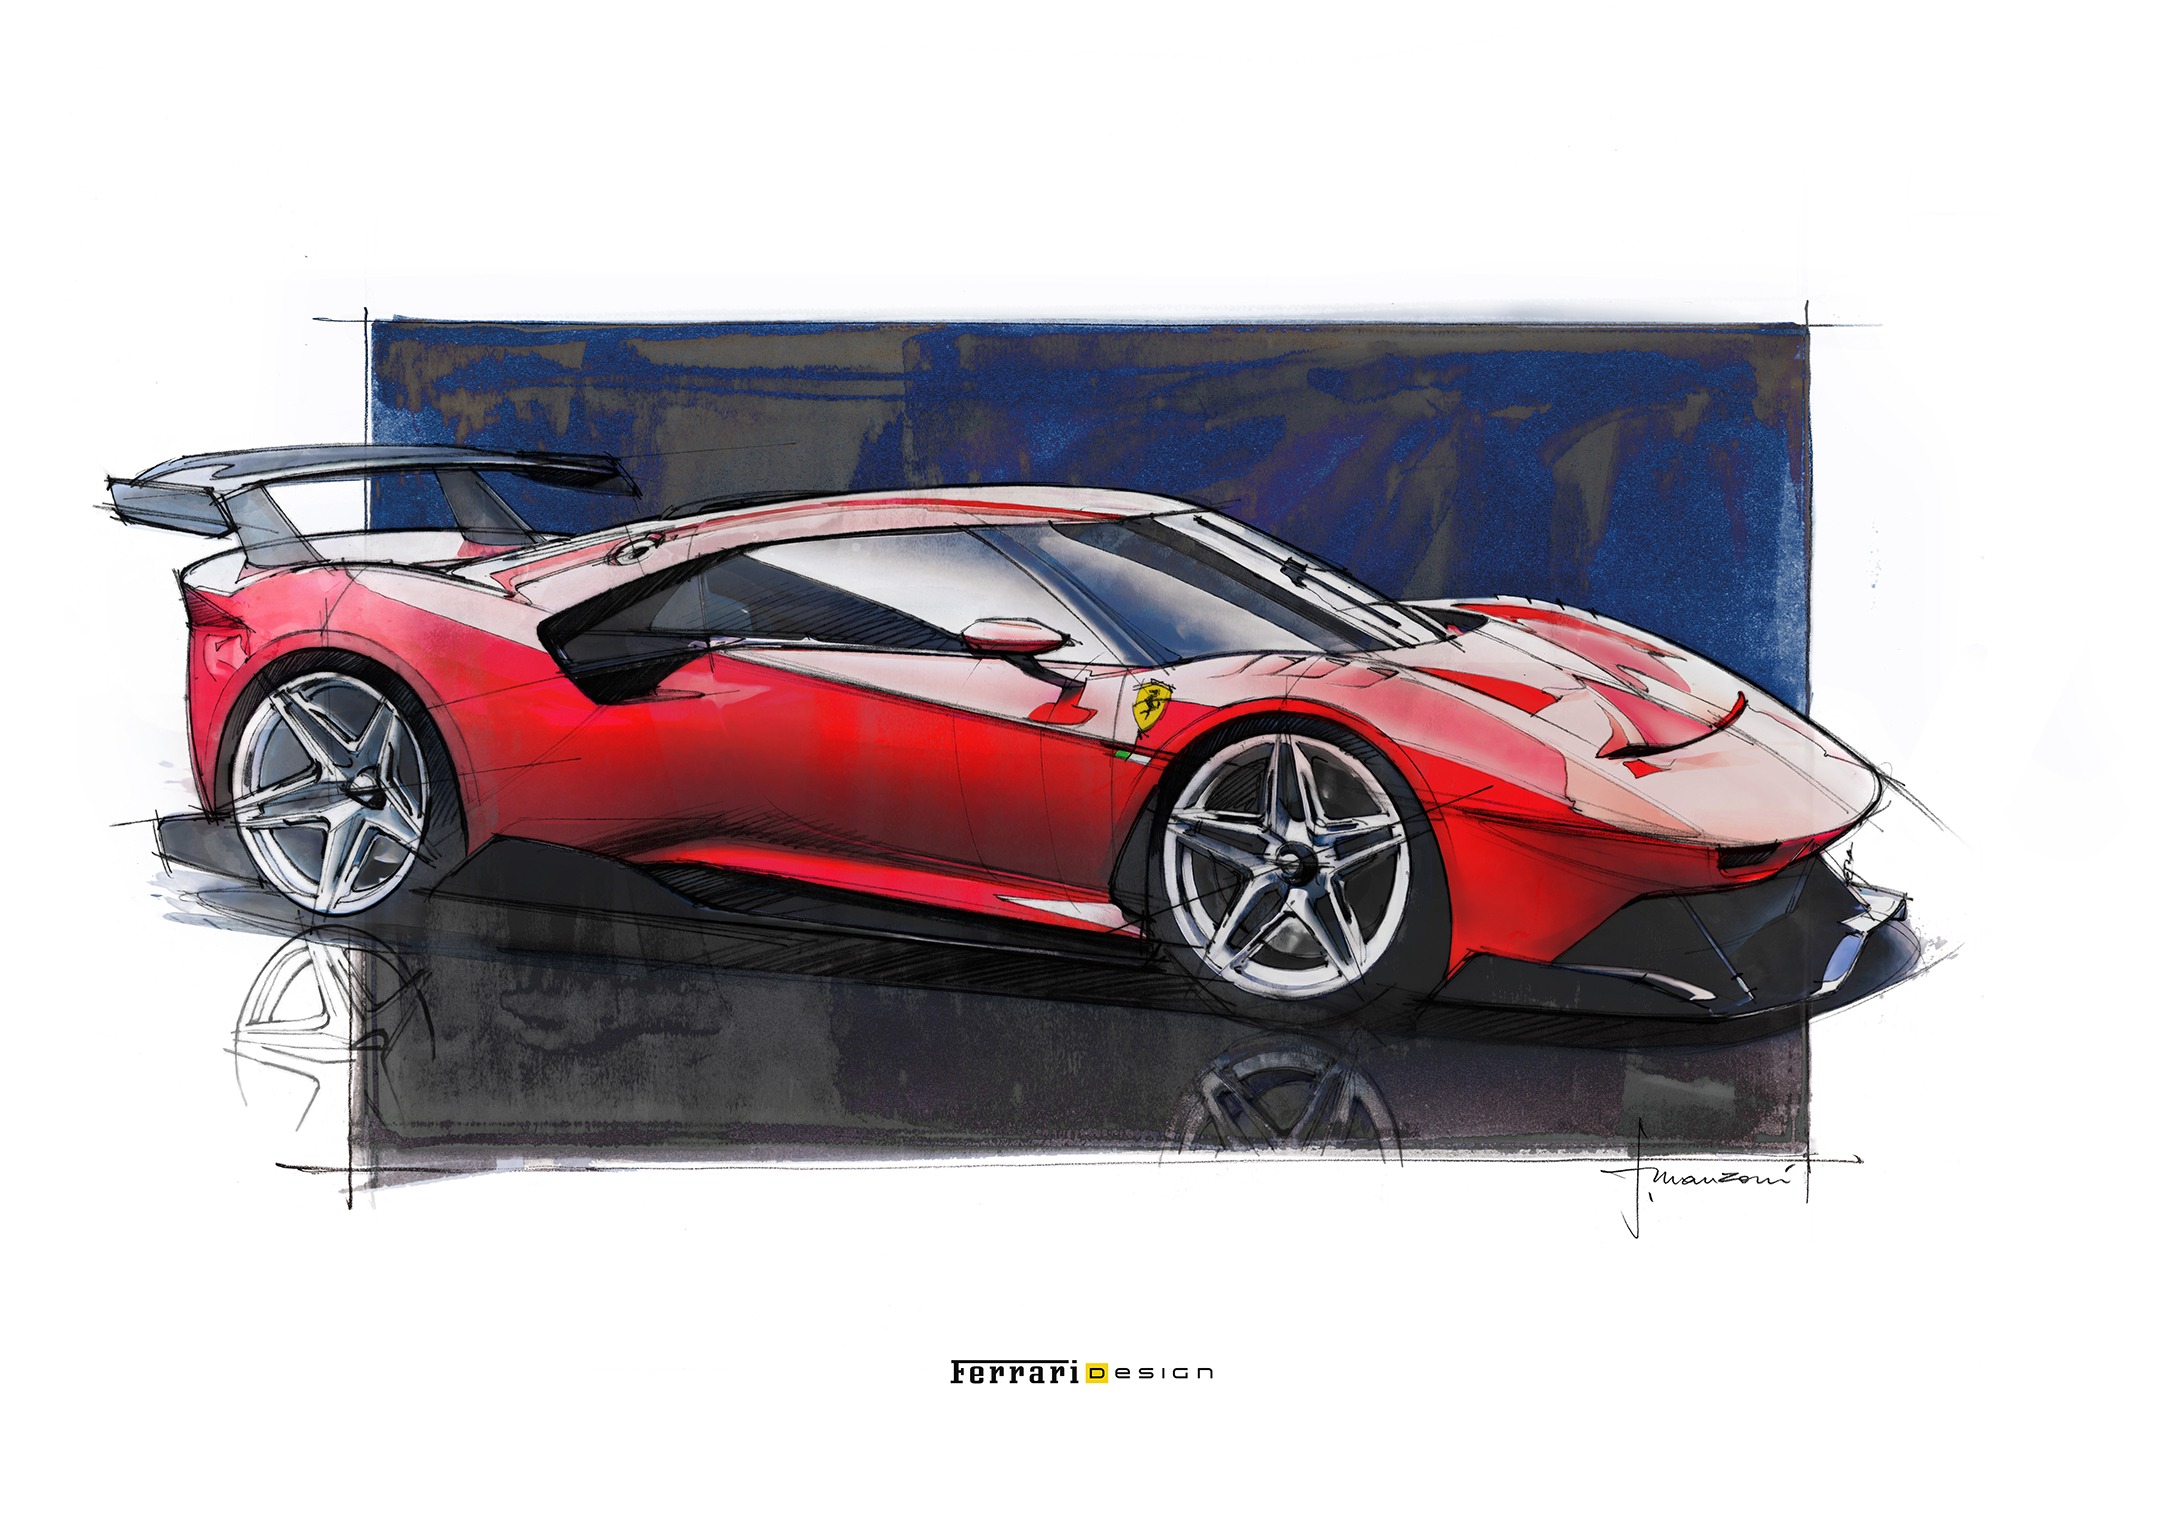 Ferrari P80/C - 2019 - design sketch